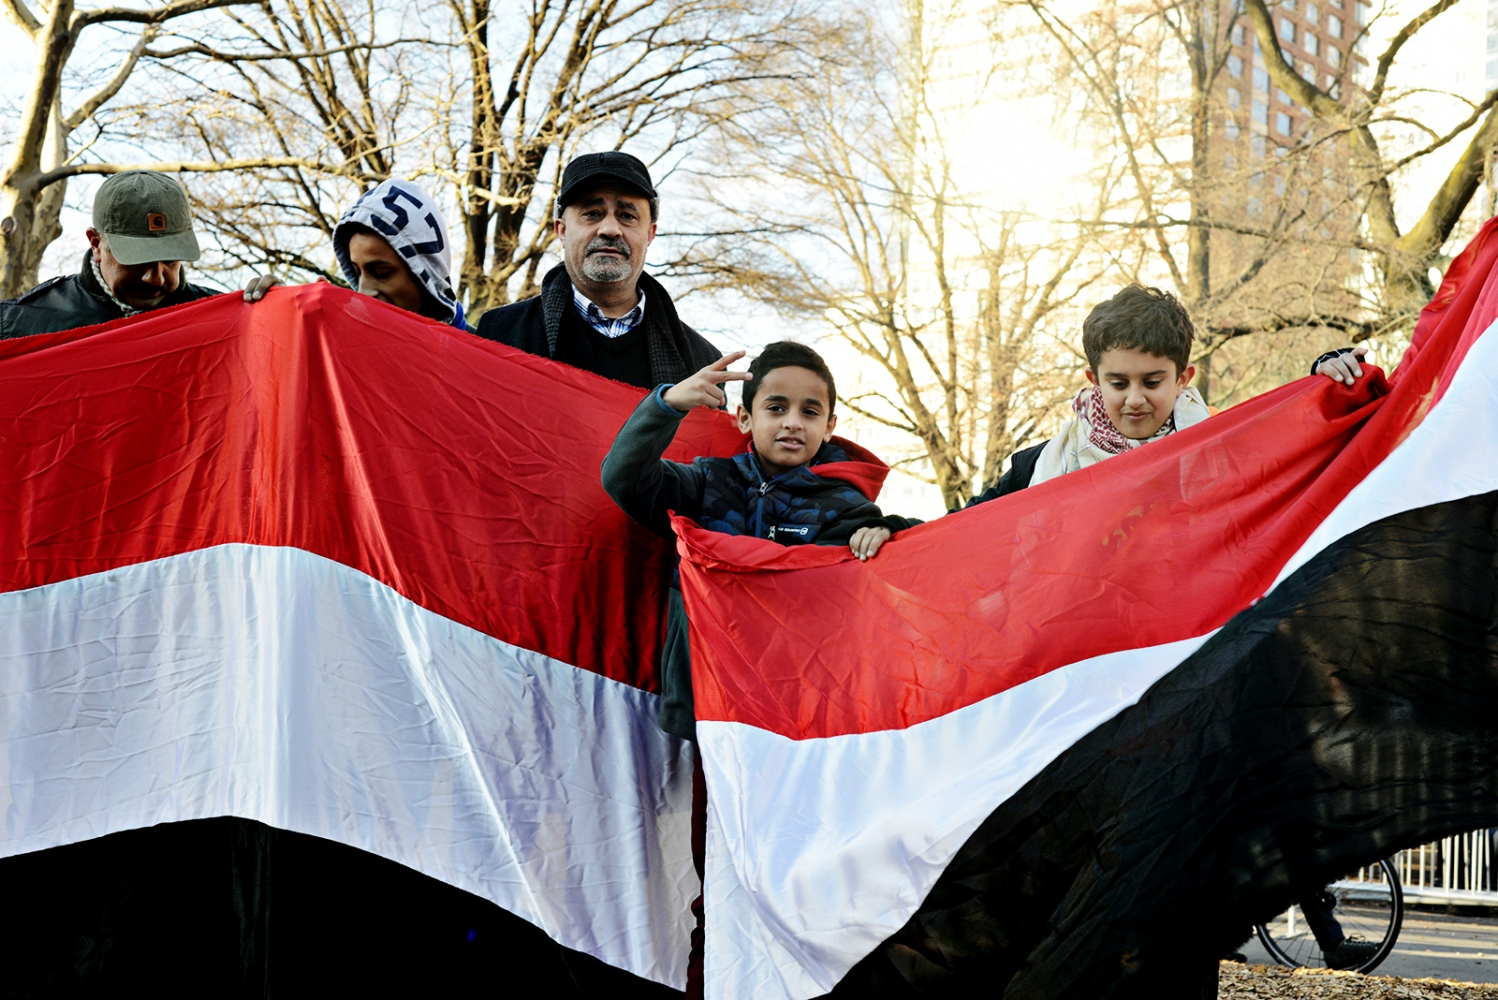 Several Yemeni Americans traveled two hours from New Jersey to attend a rally after the Trump administration announced a temporary ban the entry of foreign nationals from some Muslim-majority countries through executive order, including refugees and visa holders. One of the countries in question is Sudan but this includes Iraq, Syria, Iran, Libya, Somalia and Yemen. January 29th, 2017